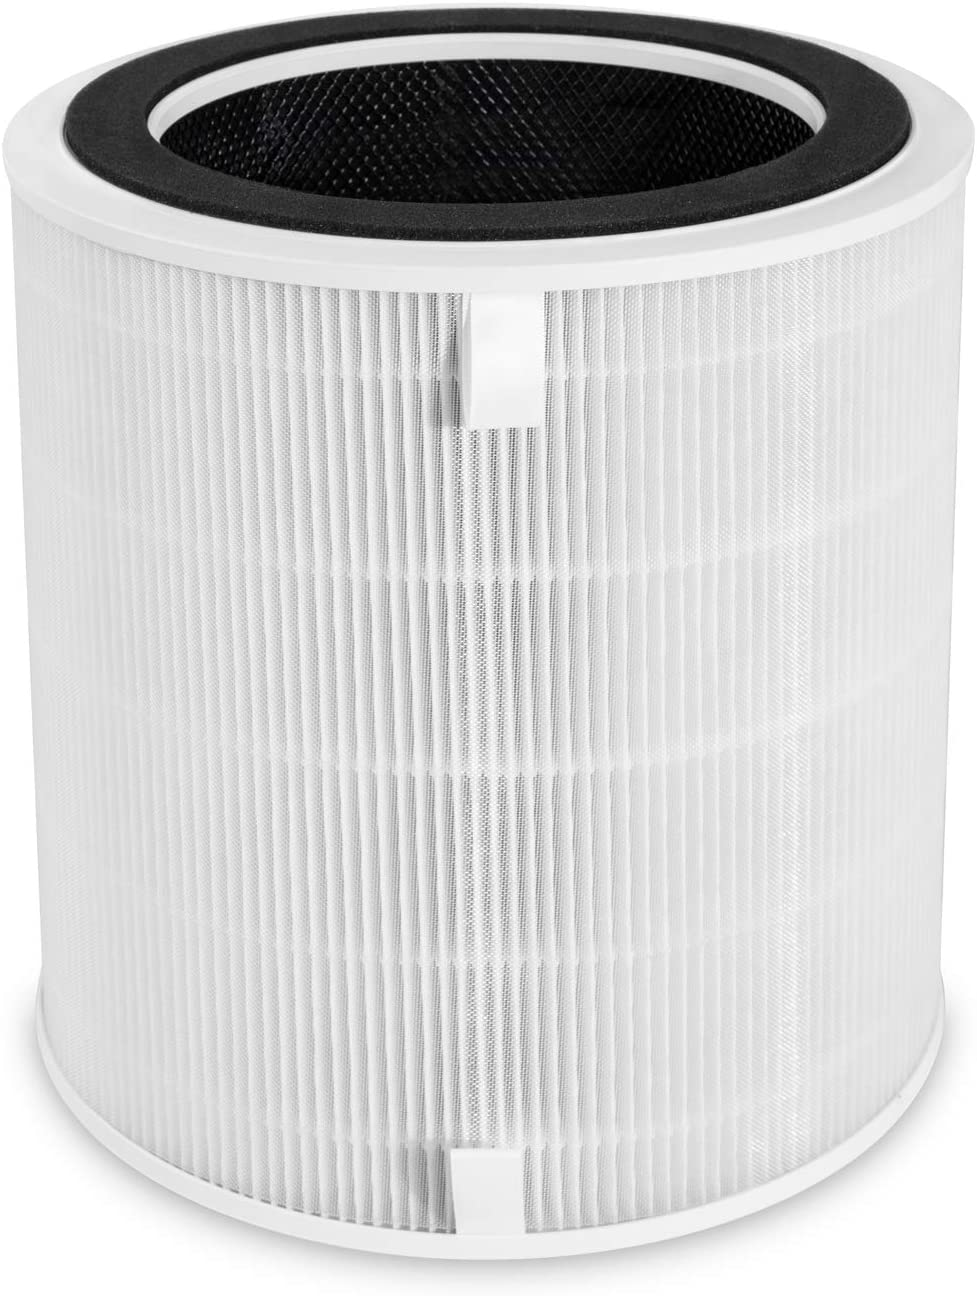 LEVOIT Air Purifier LV-H135 Replacement Filter, True HEPA and Activated Carbon Filters Set, LV-H135-RF